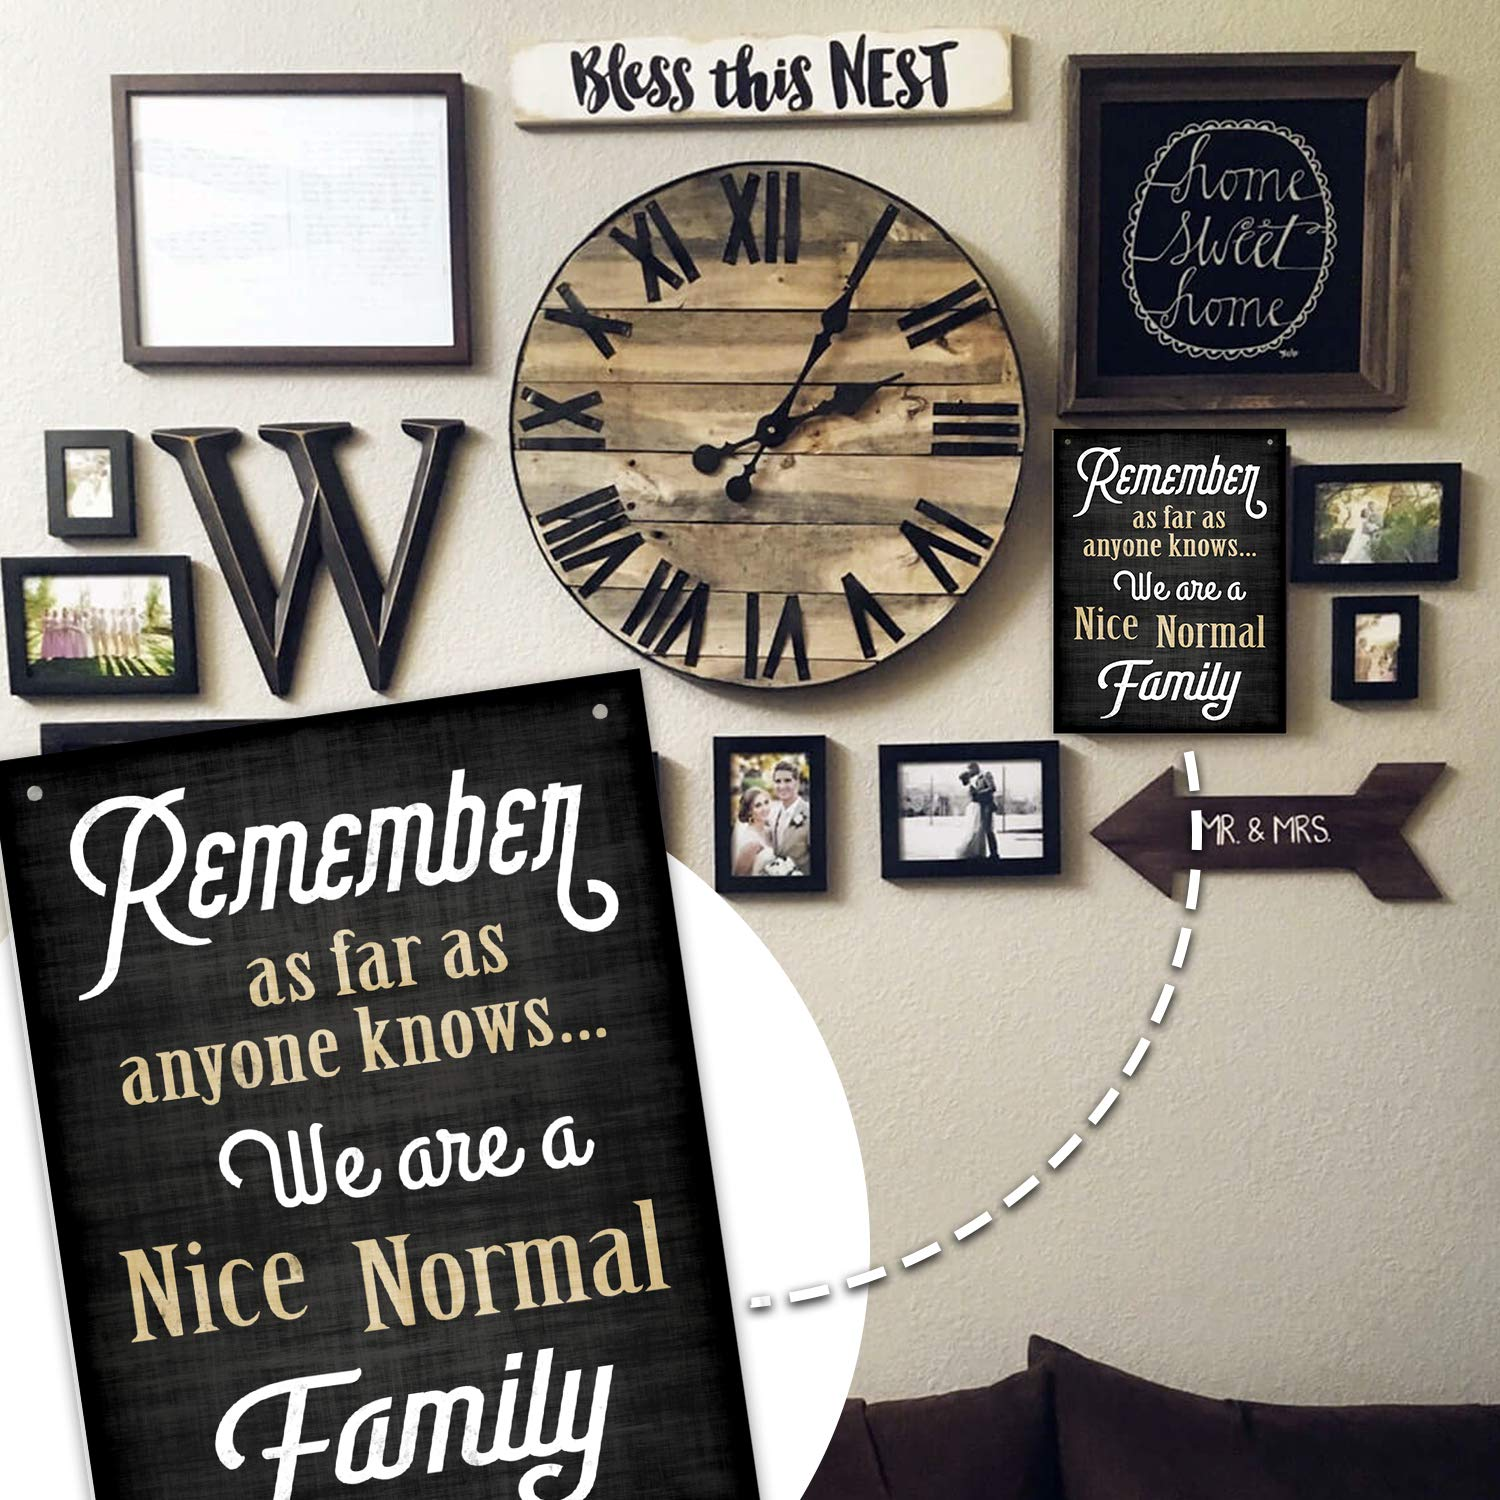 Quirky Funny Family Decoration Signs for Home Remember As Far As Anyone Knows We are a Nice Normal Family Business 11.75 x 9 Rigid PVC Front Porch Signs Decor Bigtime Signs Family Quote Sign